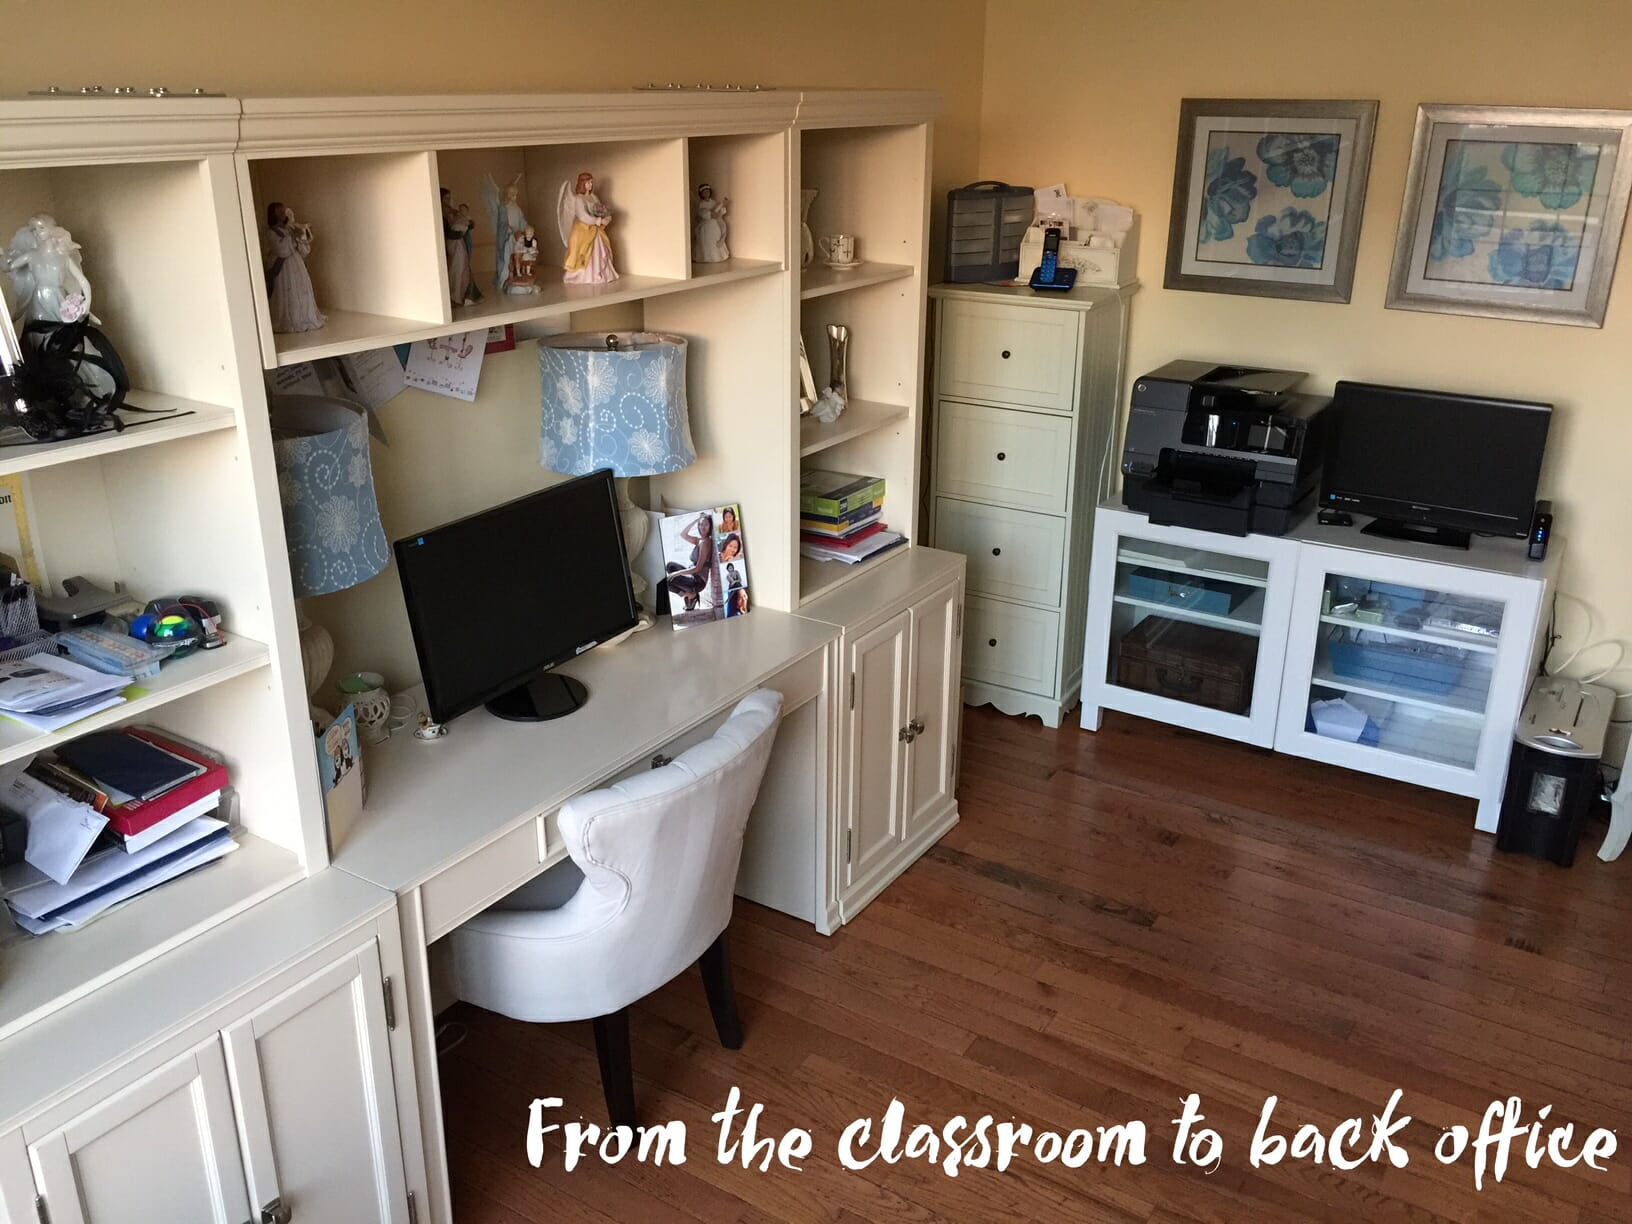 From The Classroom To The Back Office